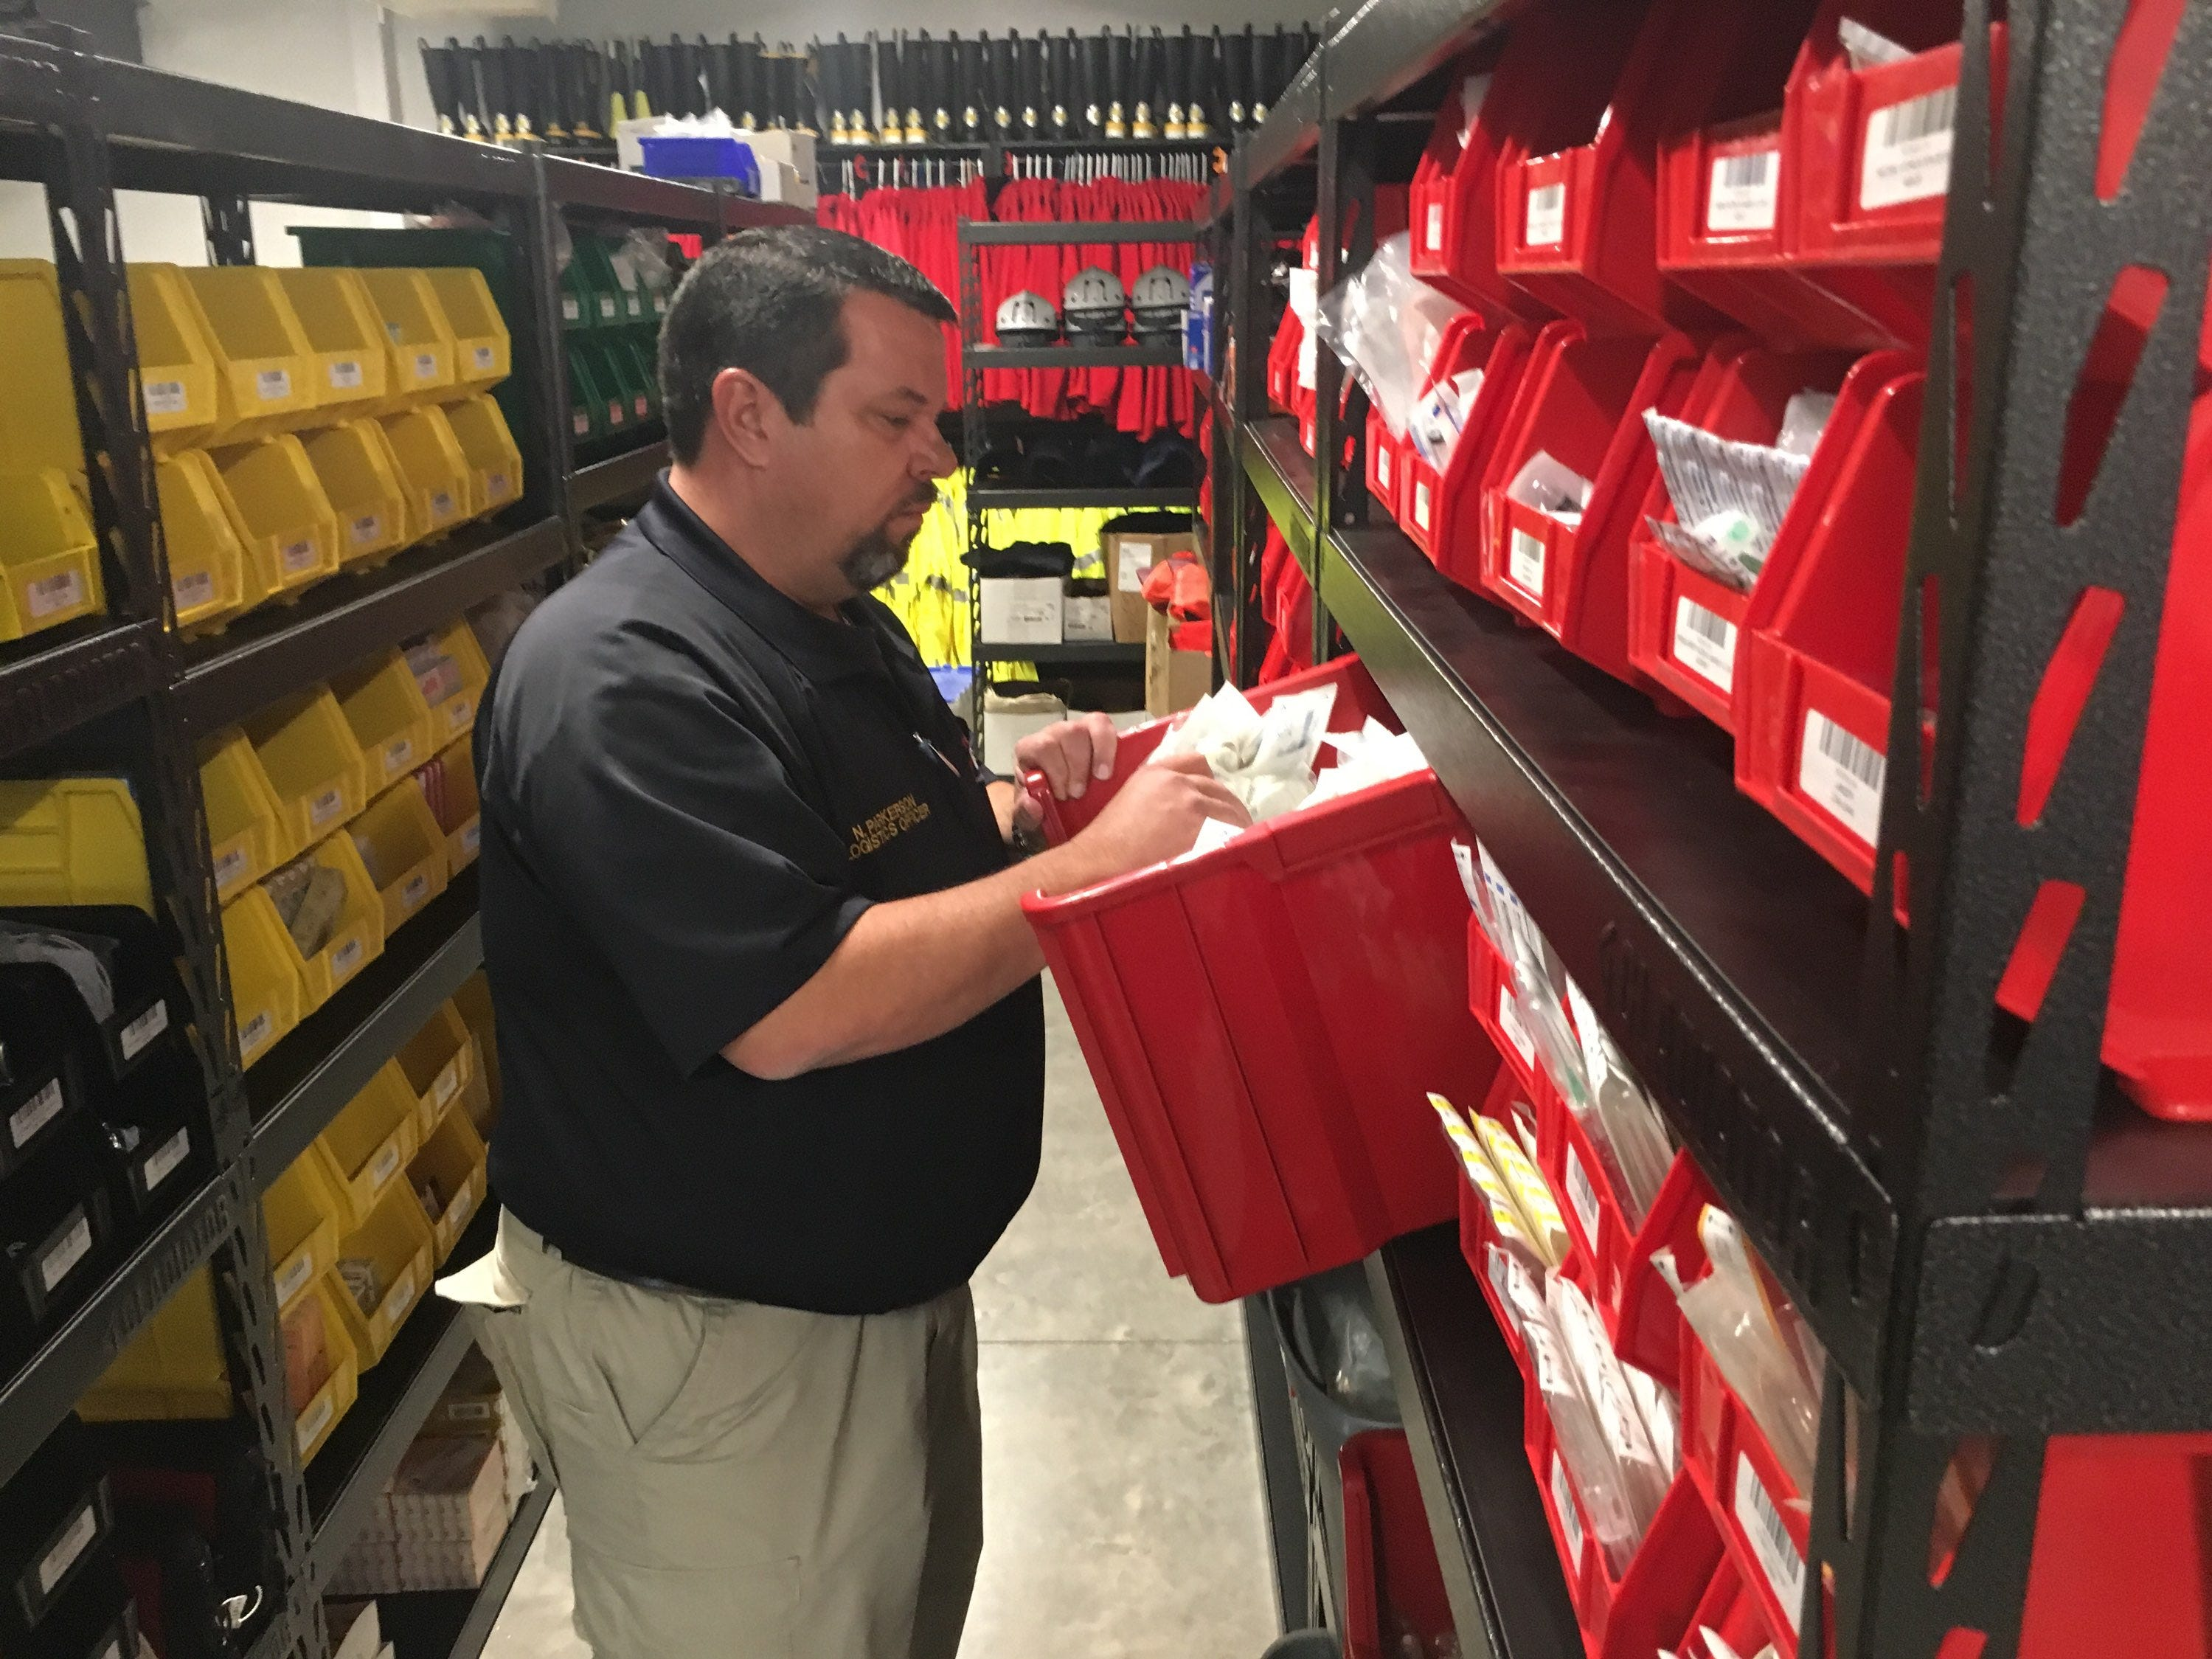 Norman Parkerson oversees some 34,000 emergency medical supplies in the new EMS center, at an annual cost of about a half-million dollars.